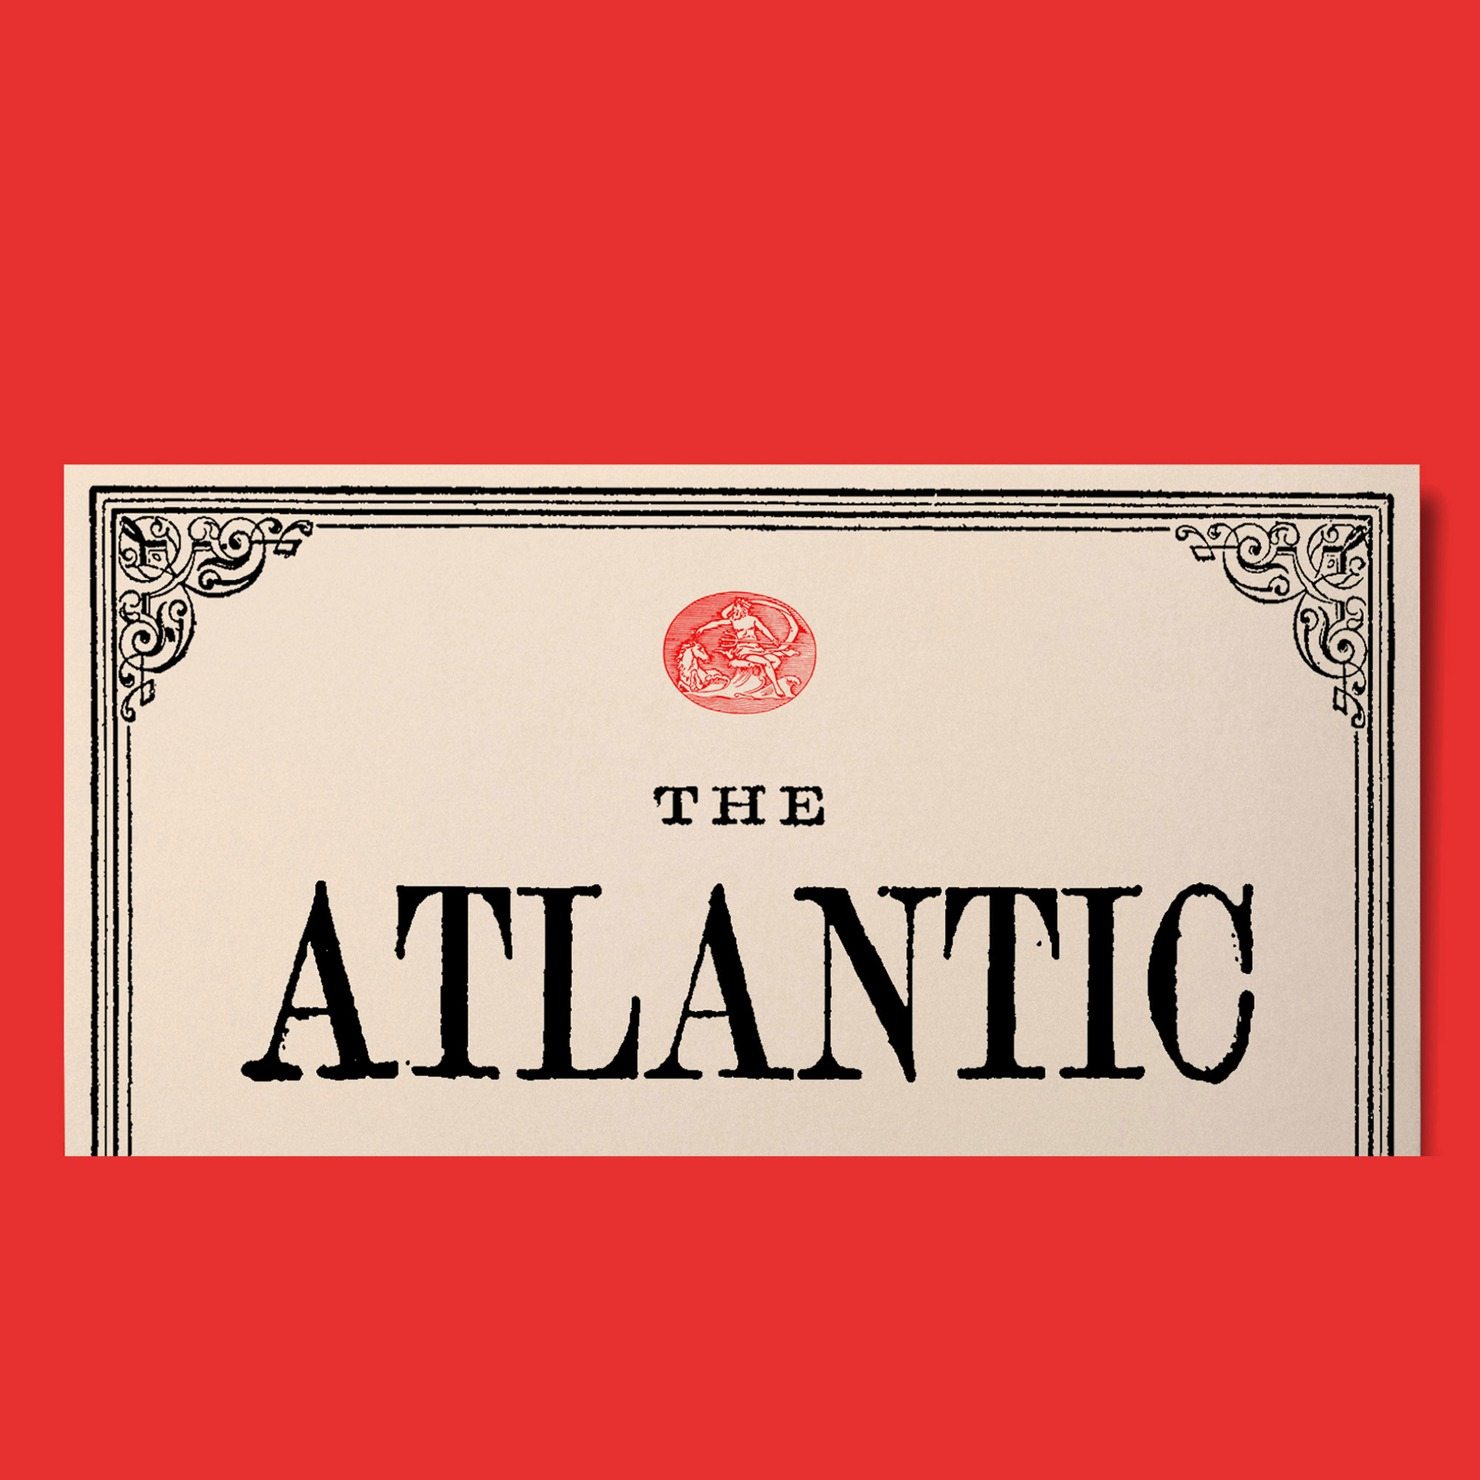 The Atlantic Introducing The Atlantic's New Subscription Model Link Thumbnail | Linktree